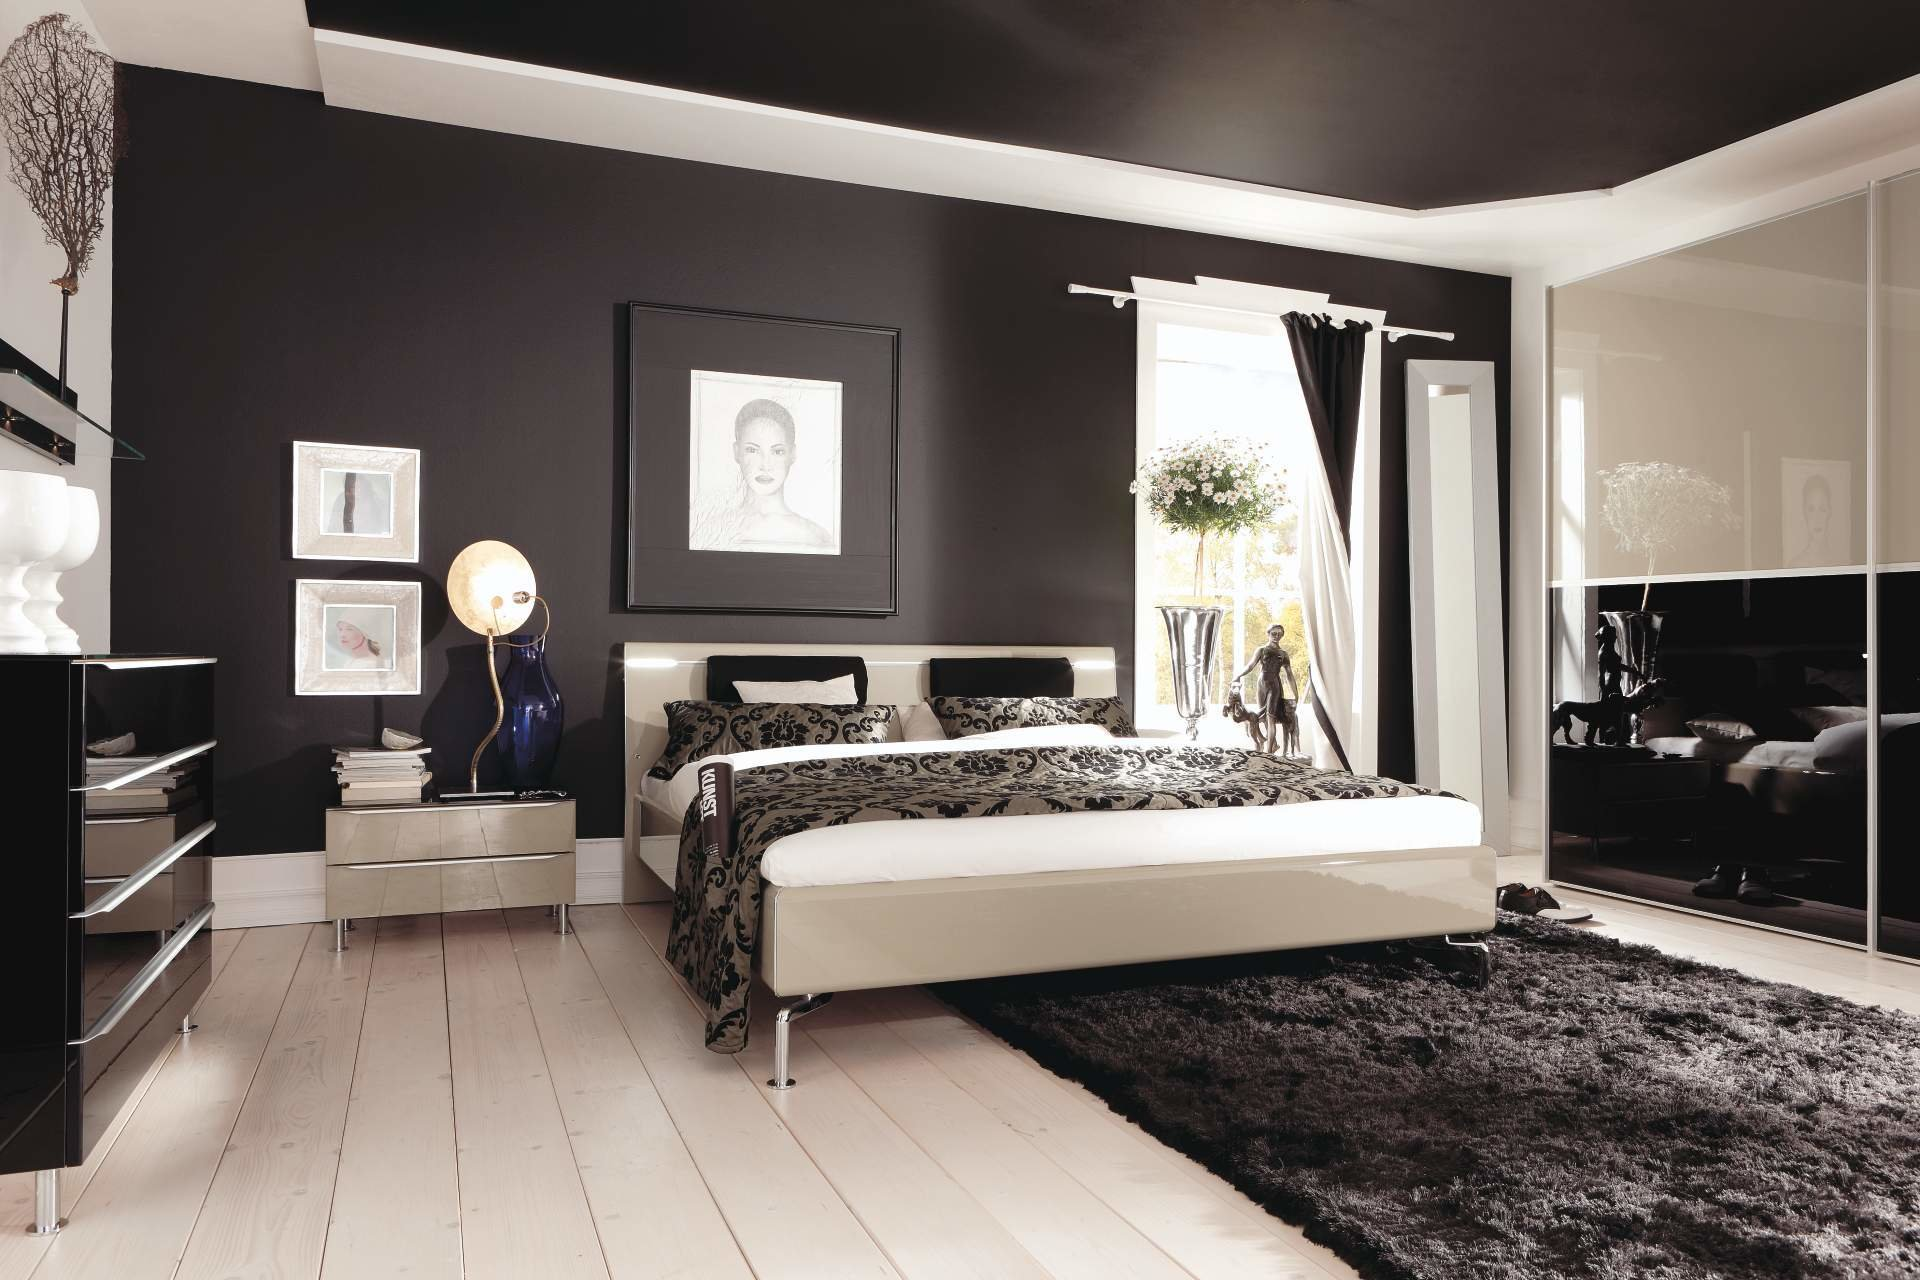 Best Dazzling Bedroom Queen Size Bed Dimensions Ideas 3193 With Pictures